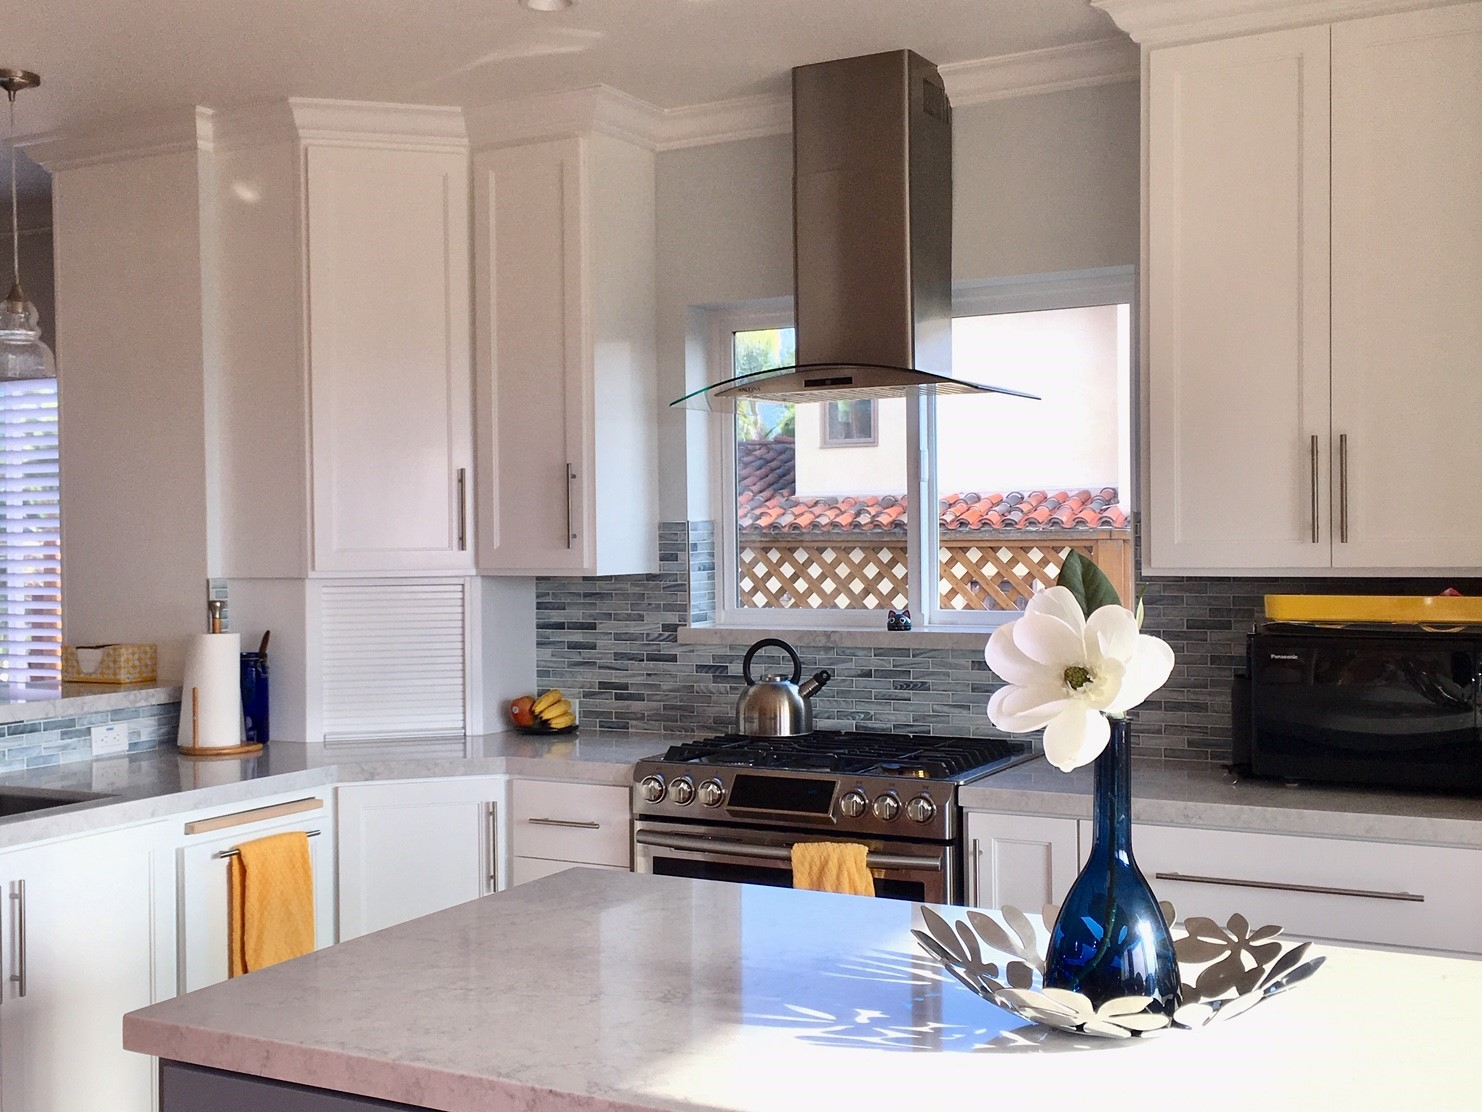 - How To Get The Best Price For Your Kitchen Backsplash In 2019